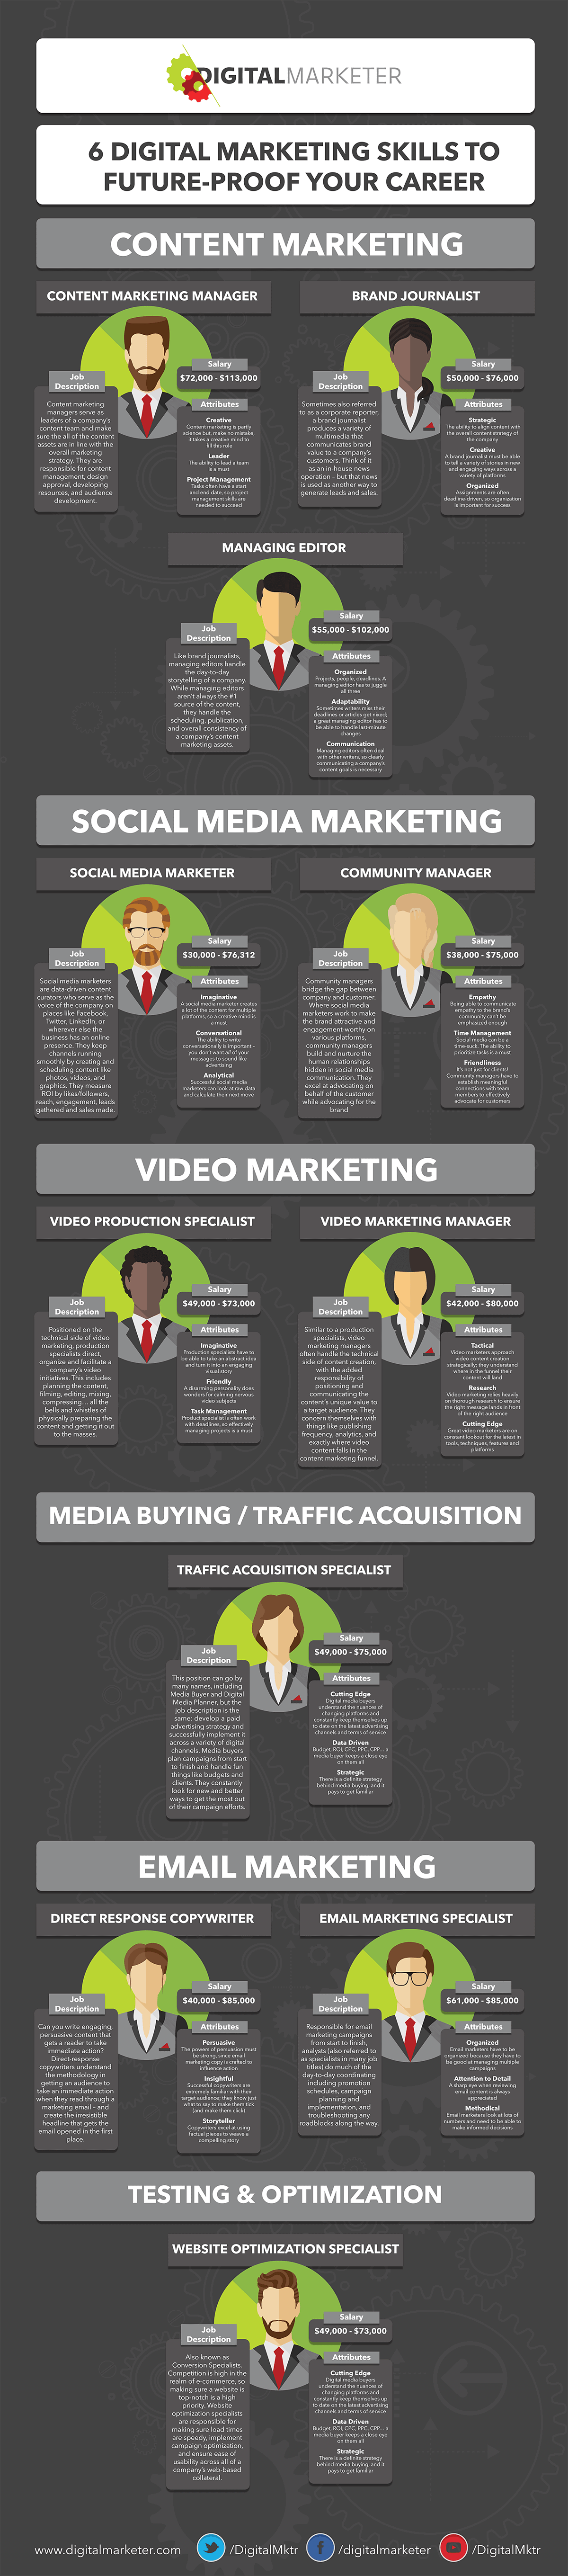 Digital Marketing Skills Infographic - Google Search